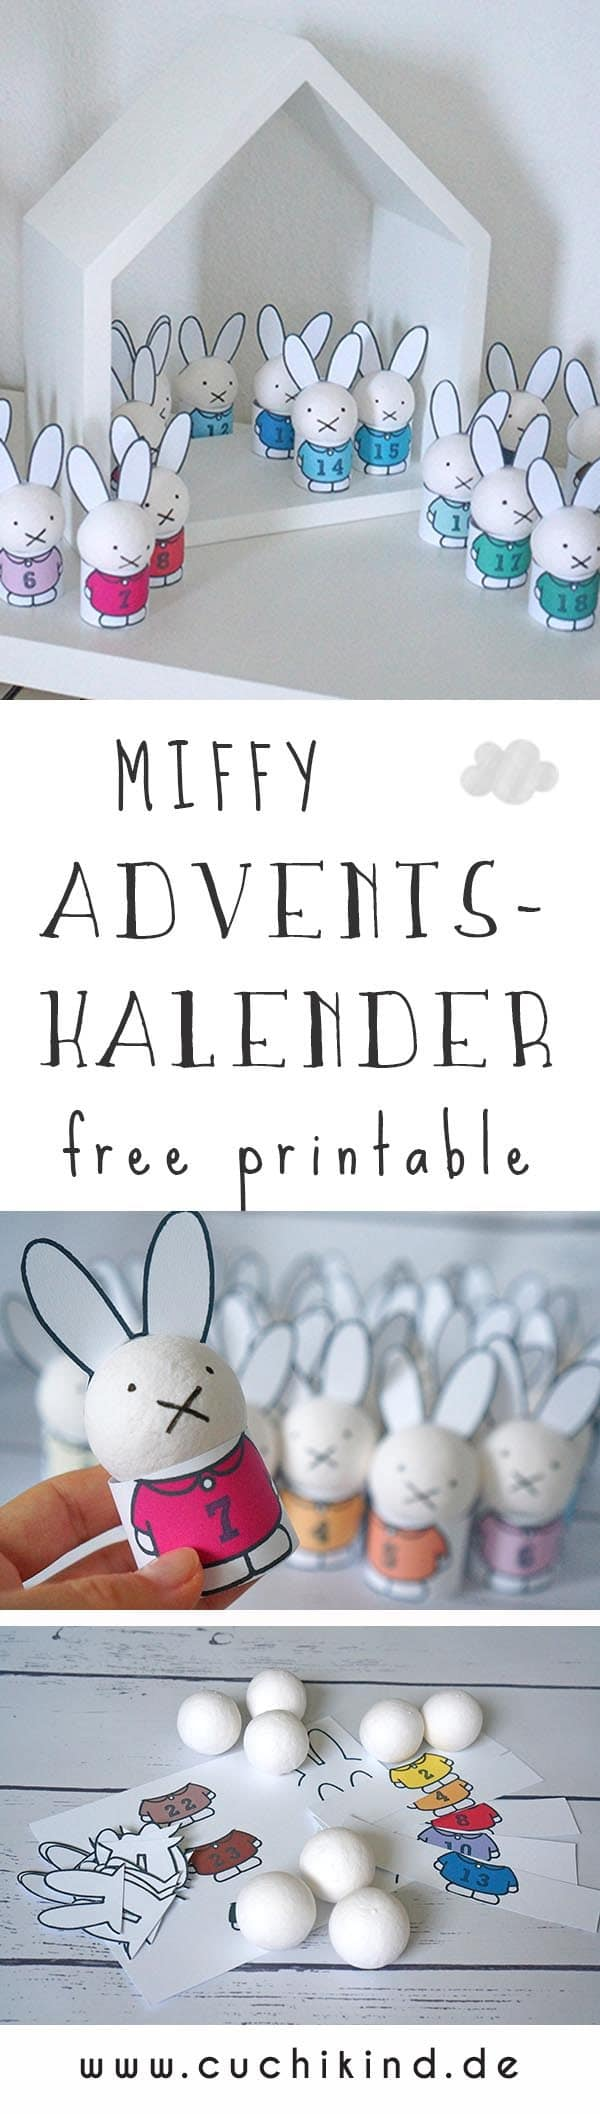 Miffy Adventskalender